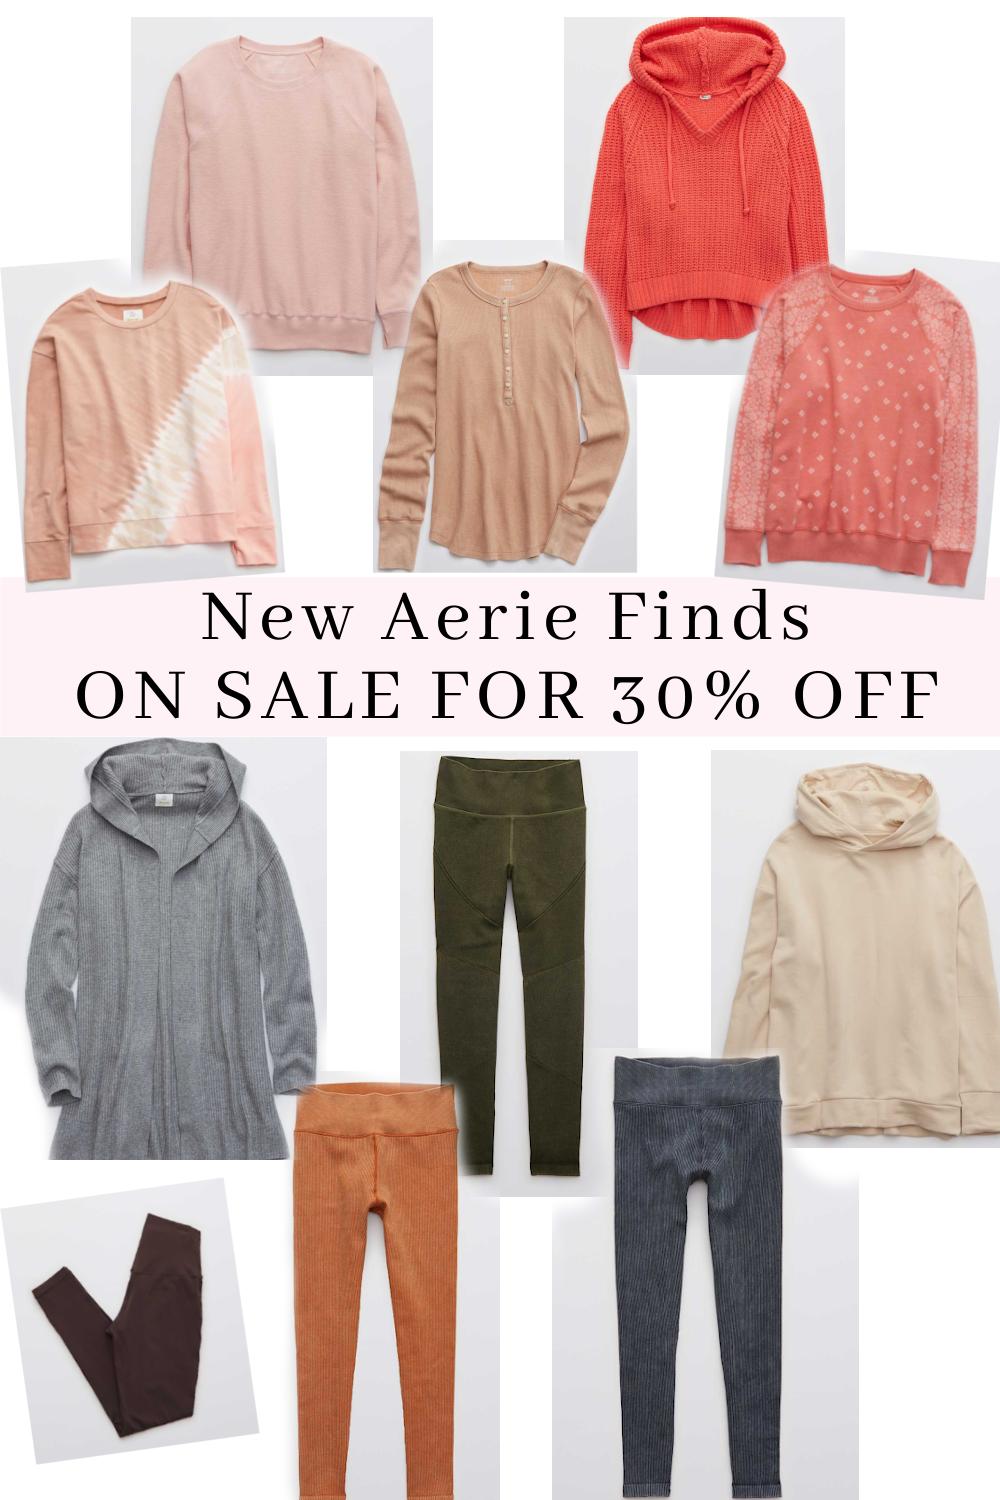 AERIE FINDS